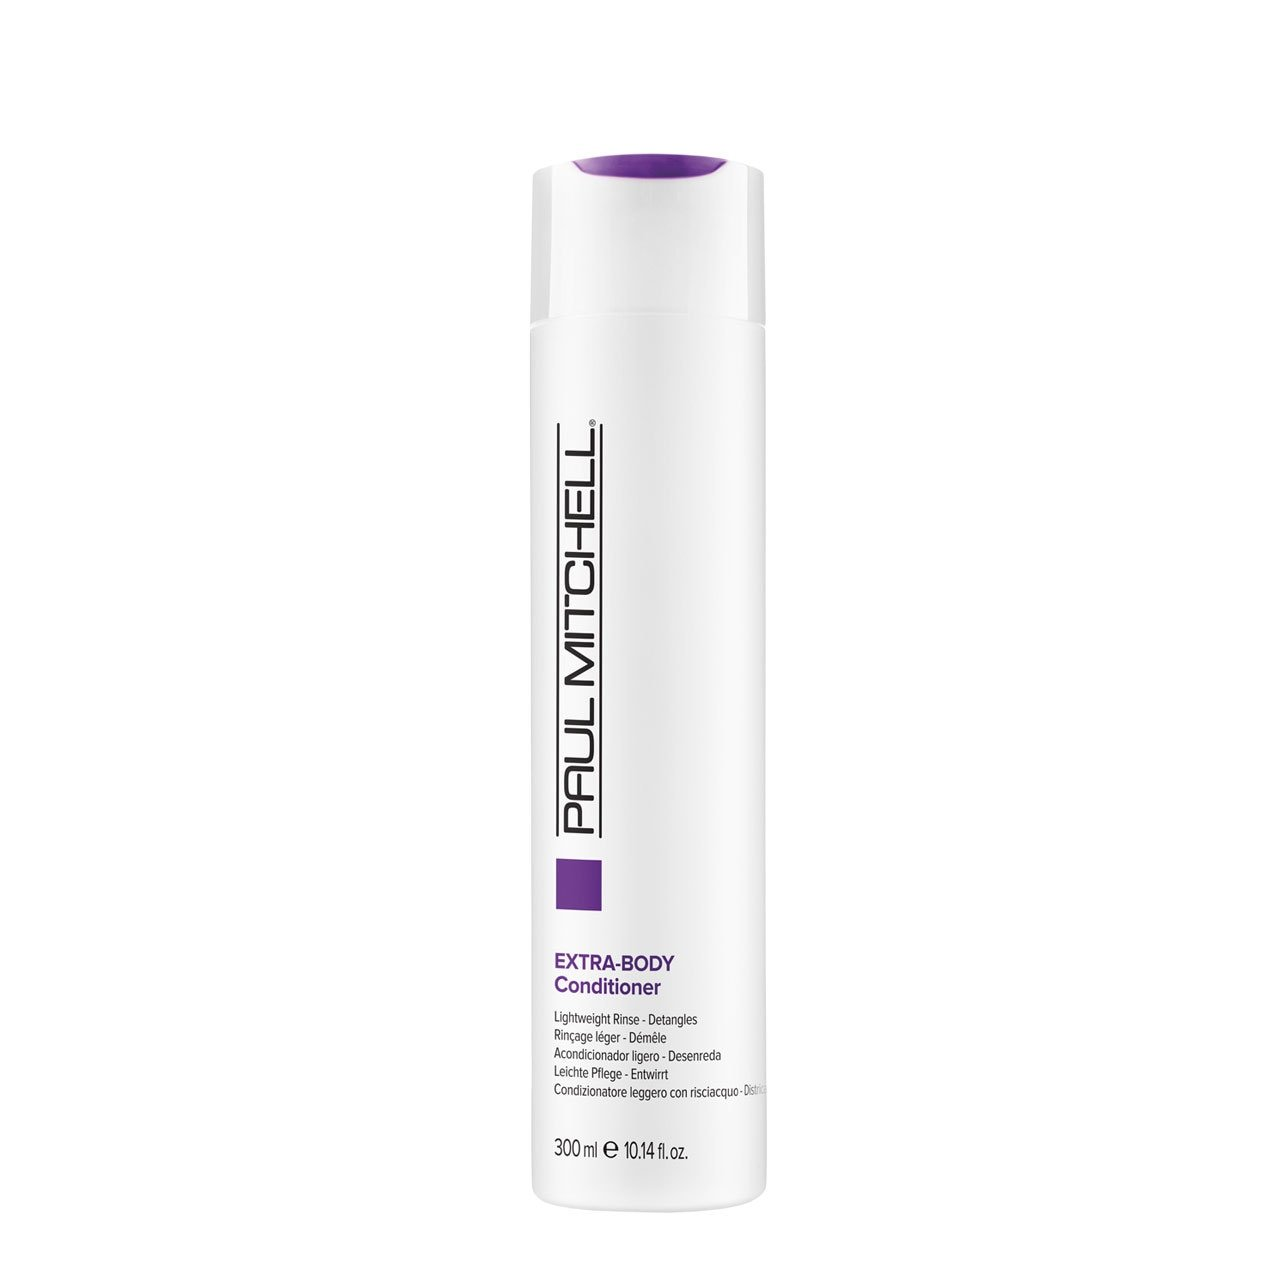 Paul Mitchell - Extra-Body Conditioner 300ml